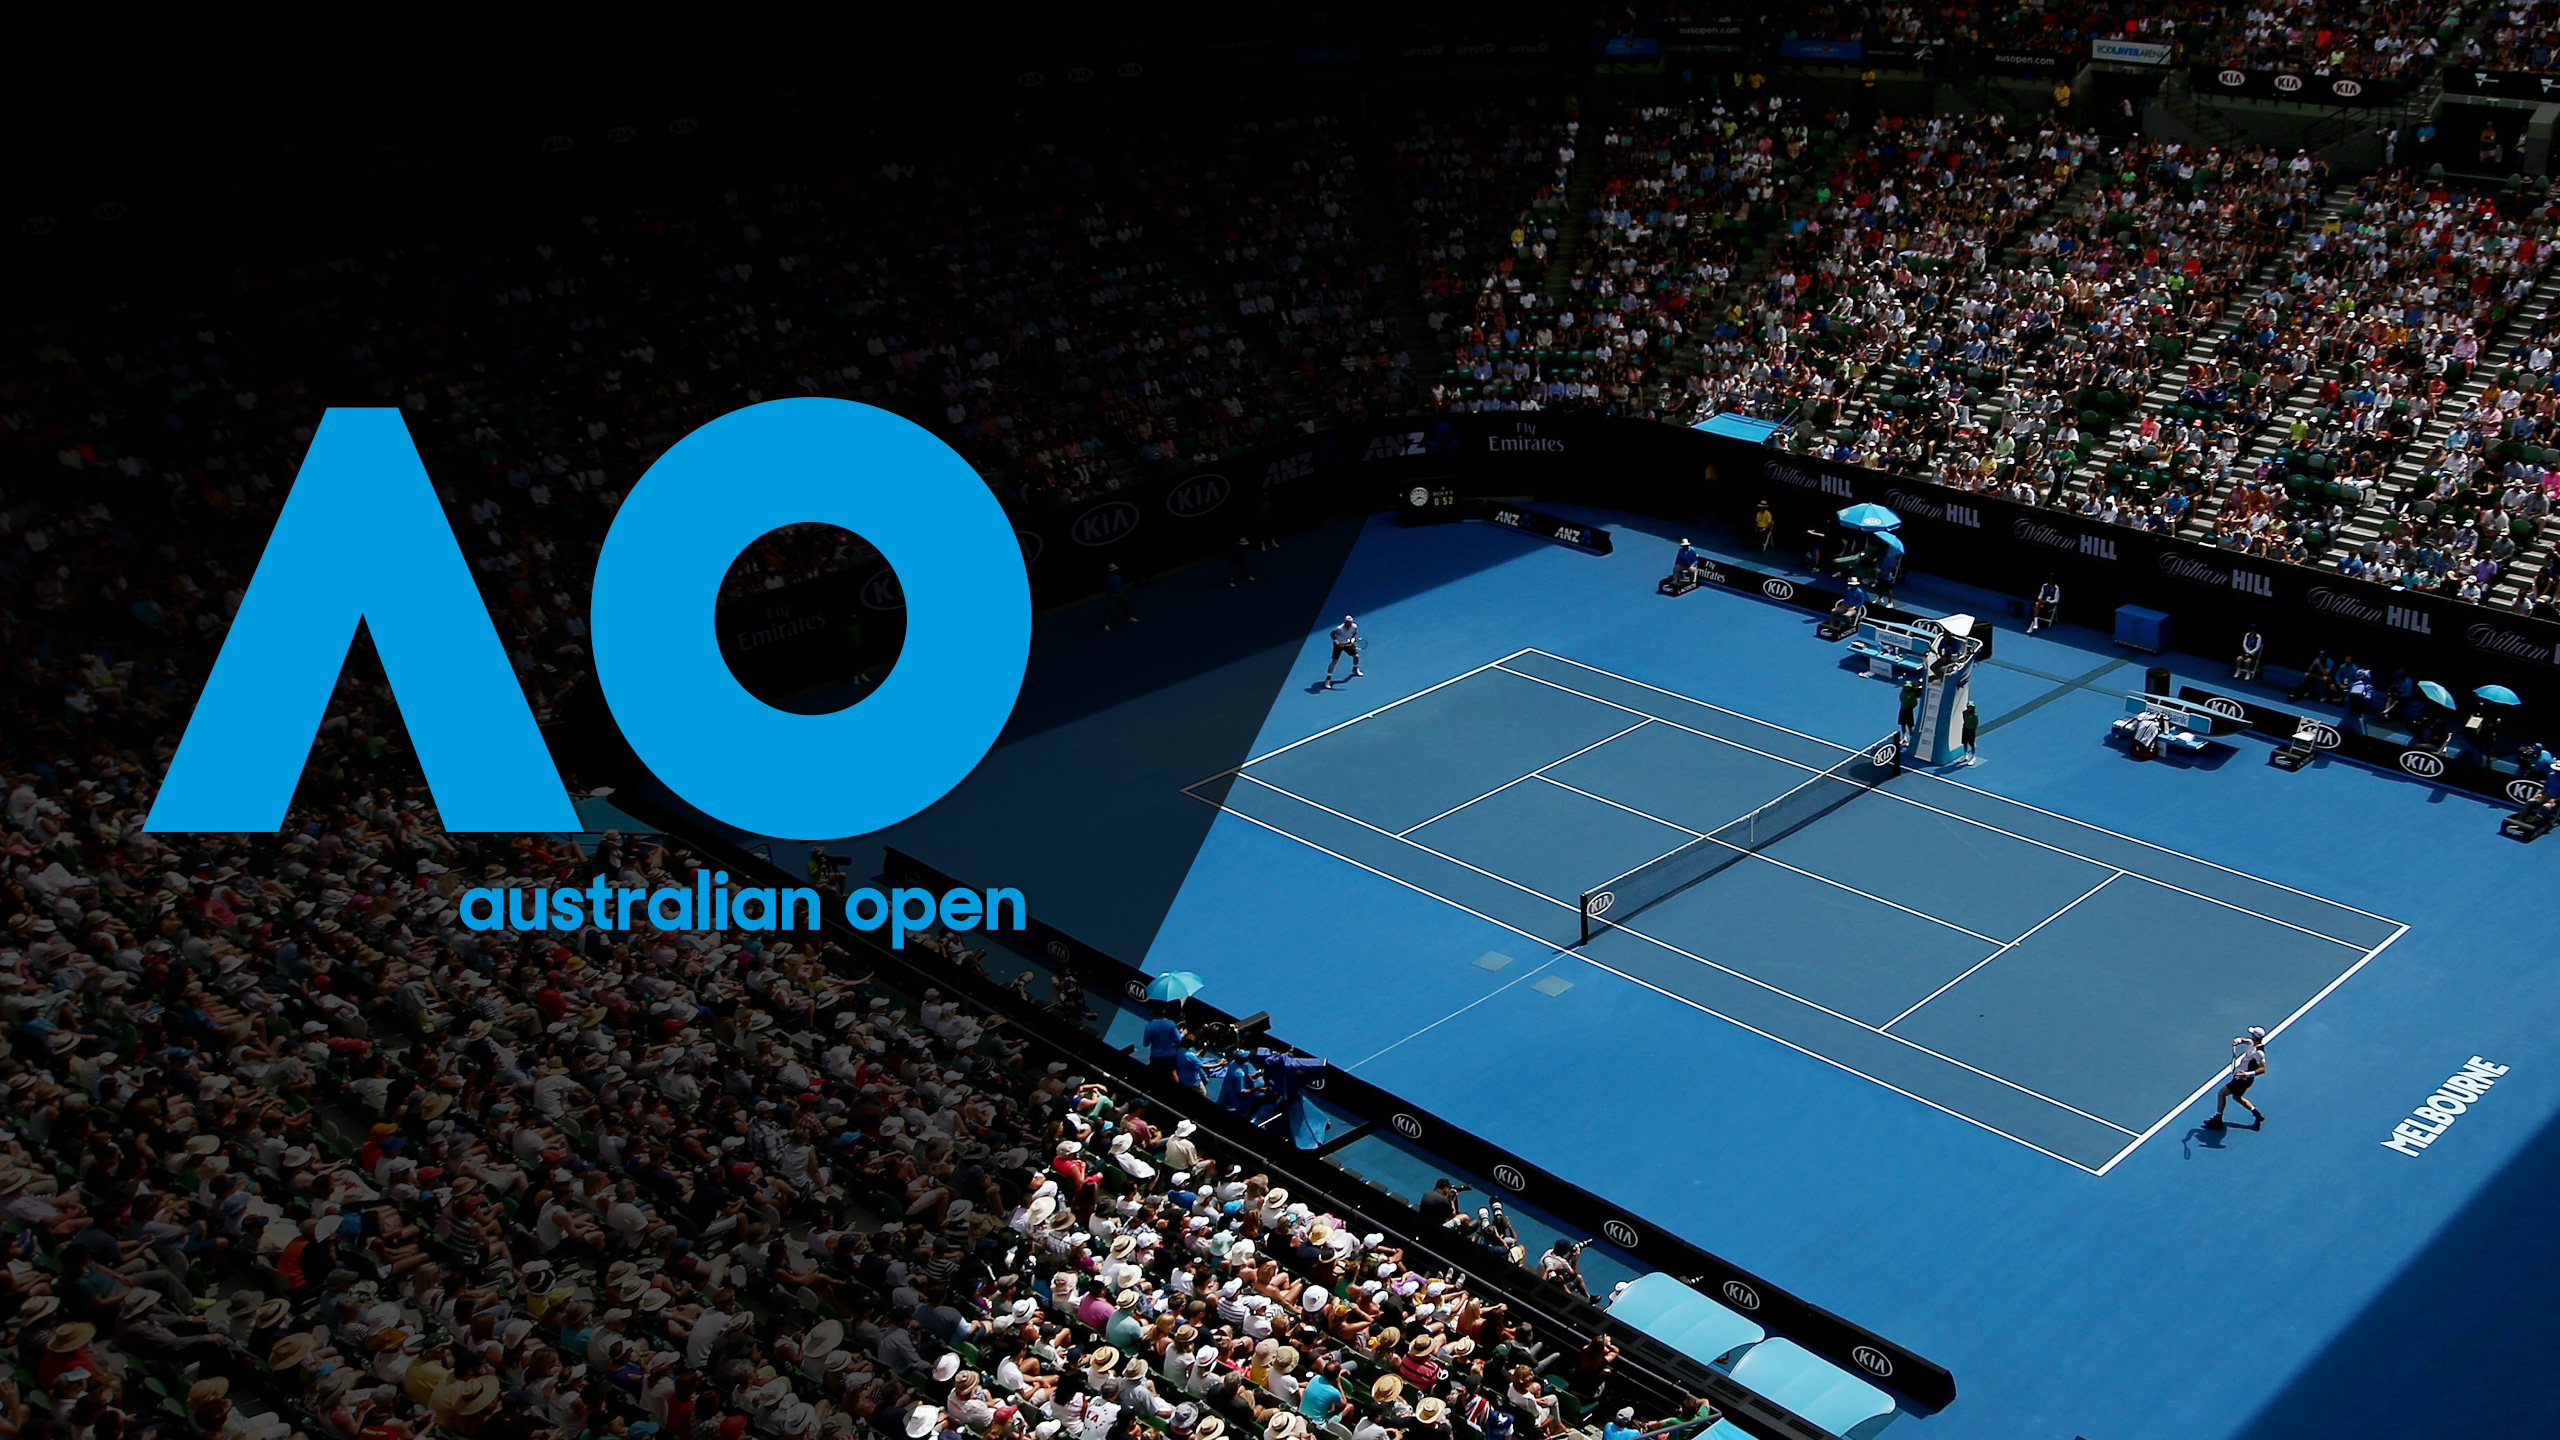 2019 Australian Open: Coverage Presented by SoFi (Women's Semifinals)